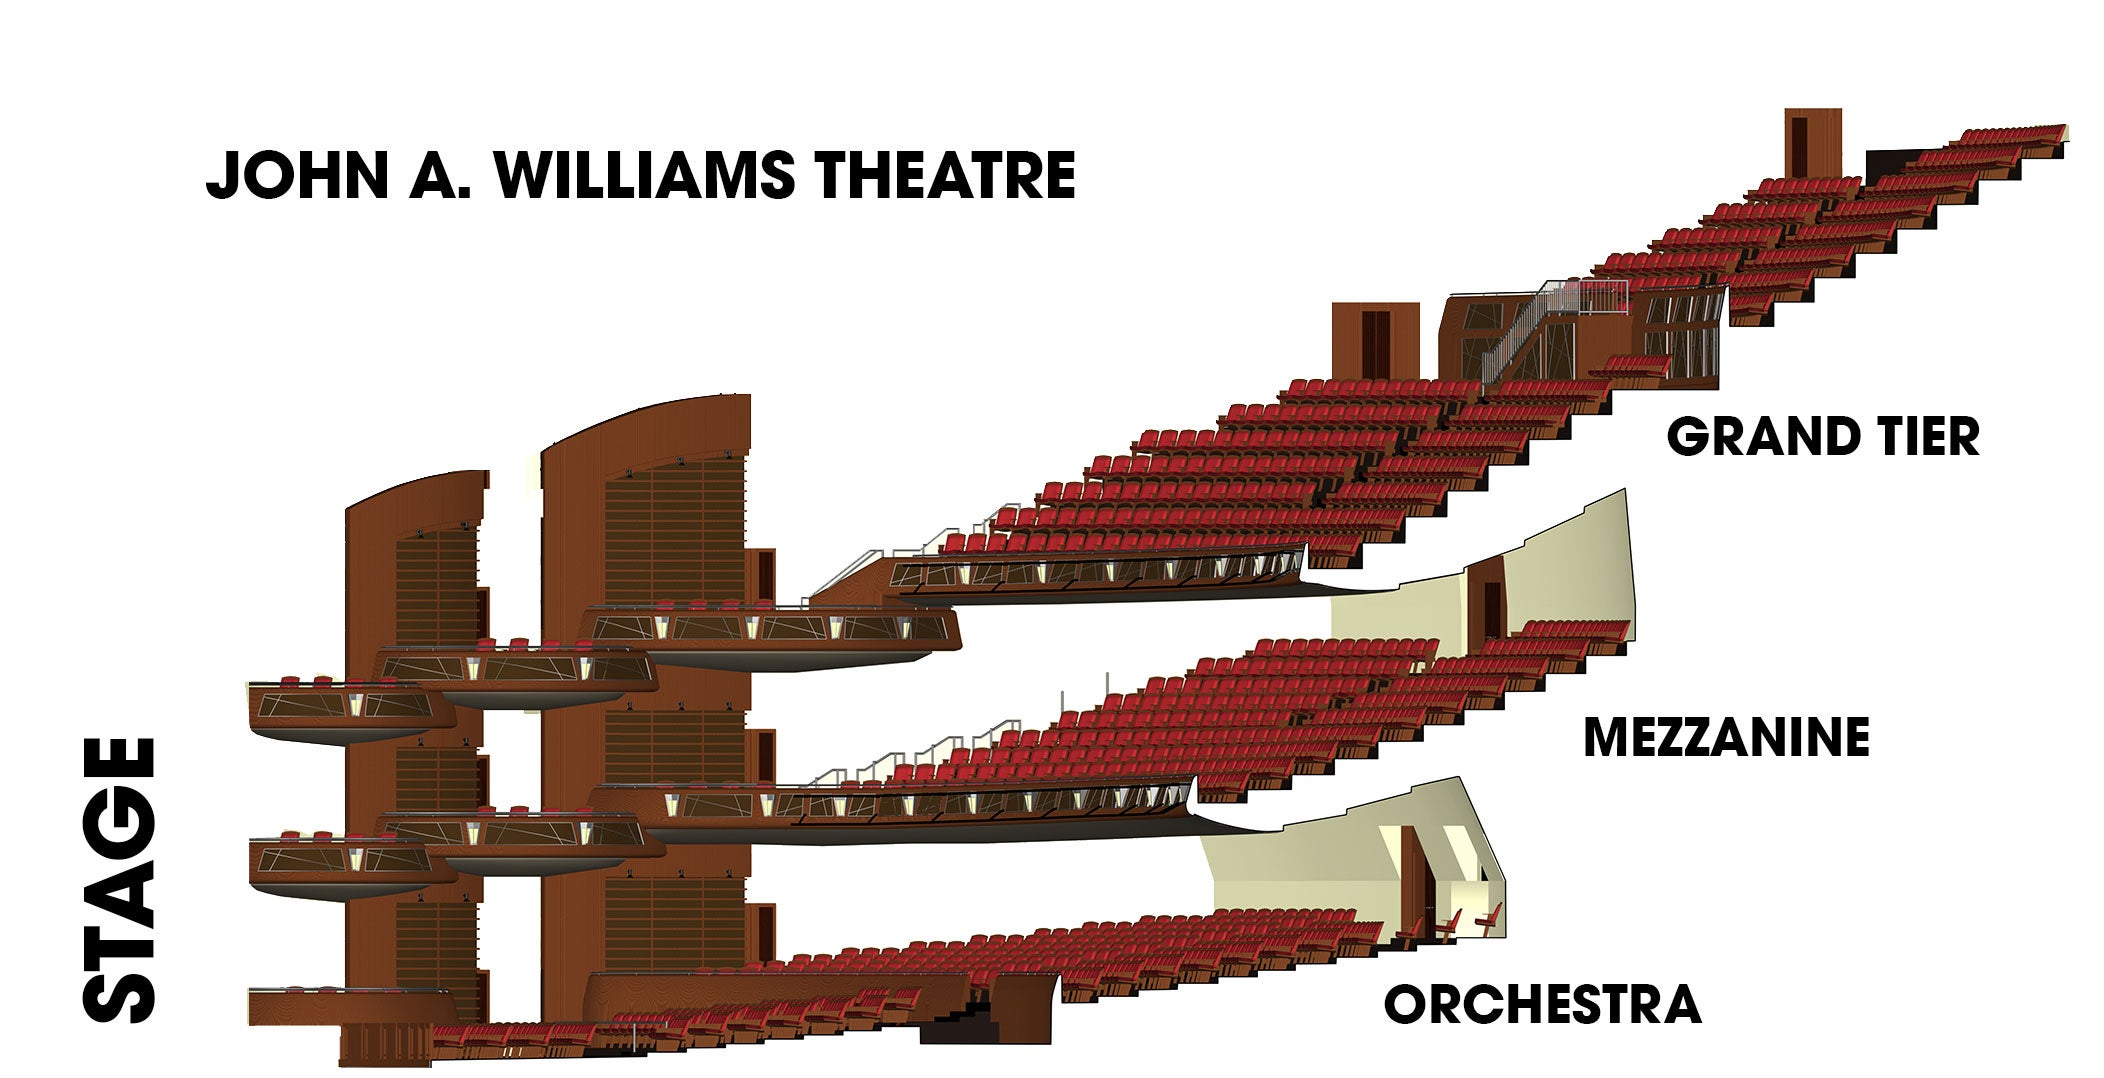 Cross section of the John A. Williams Theatre